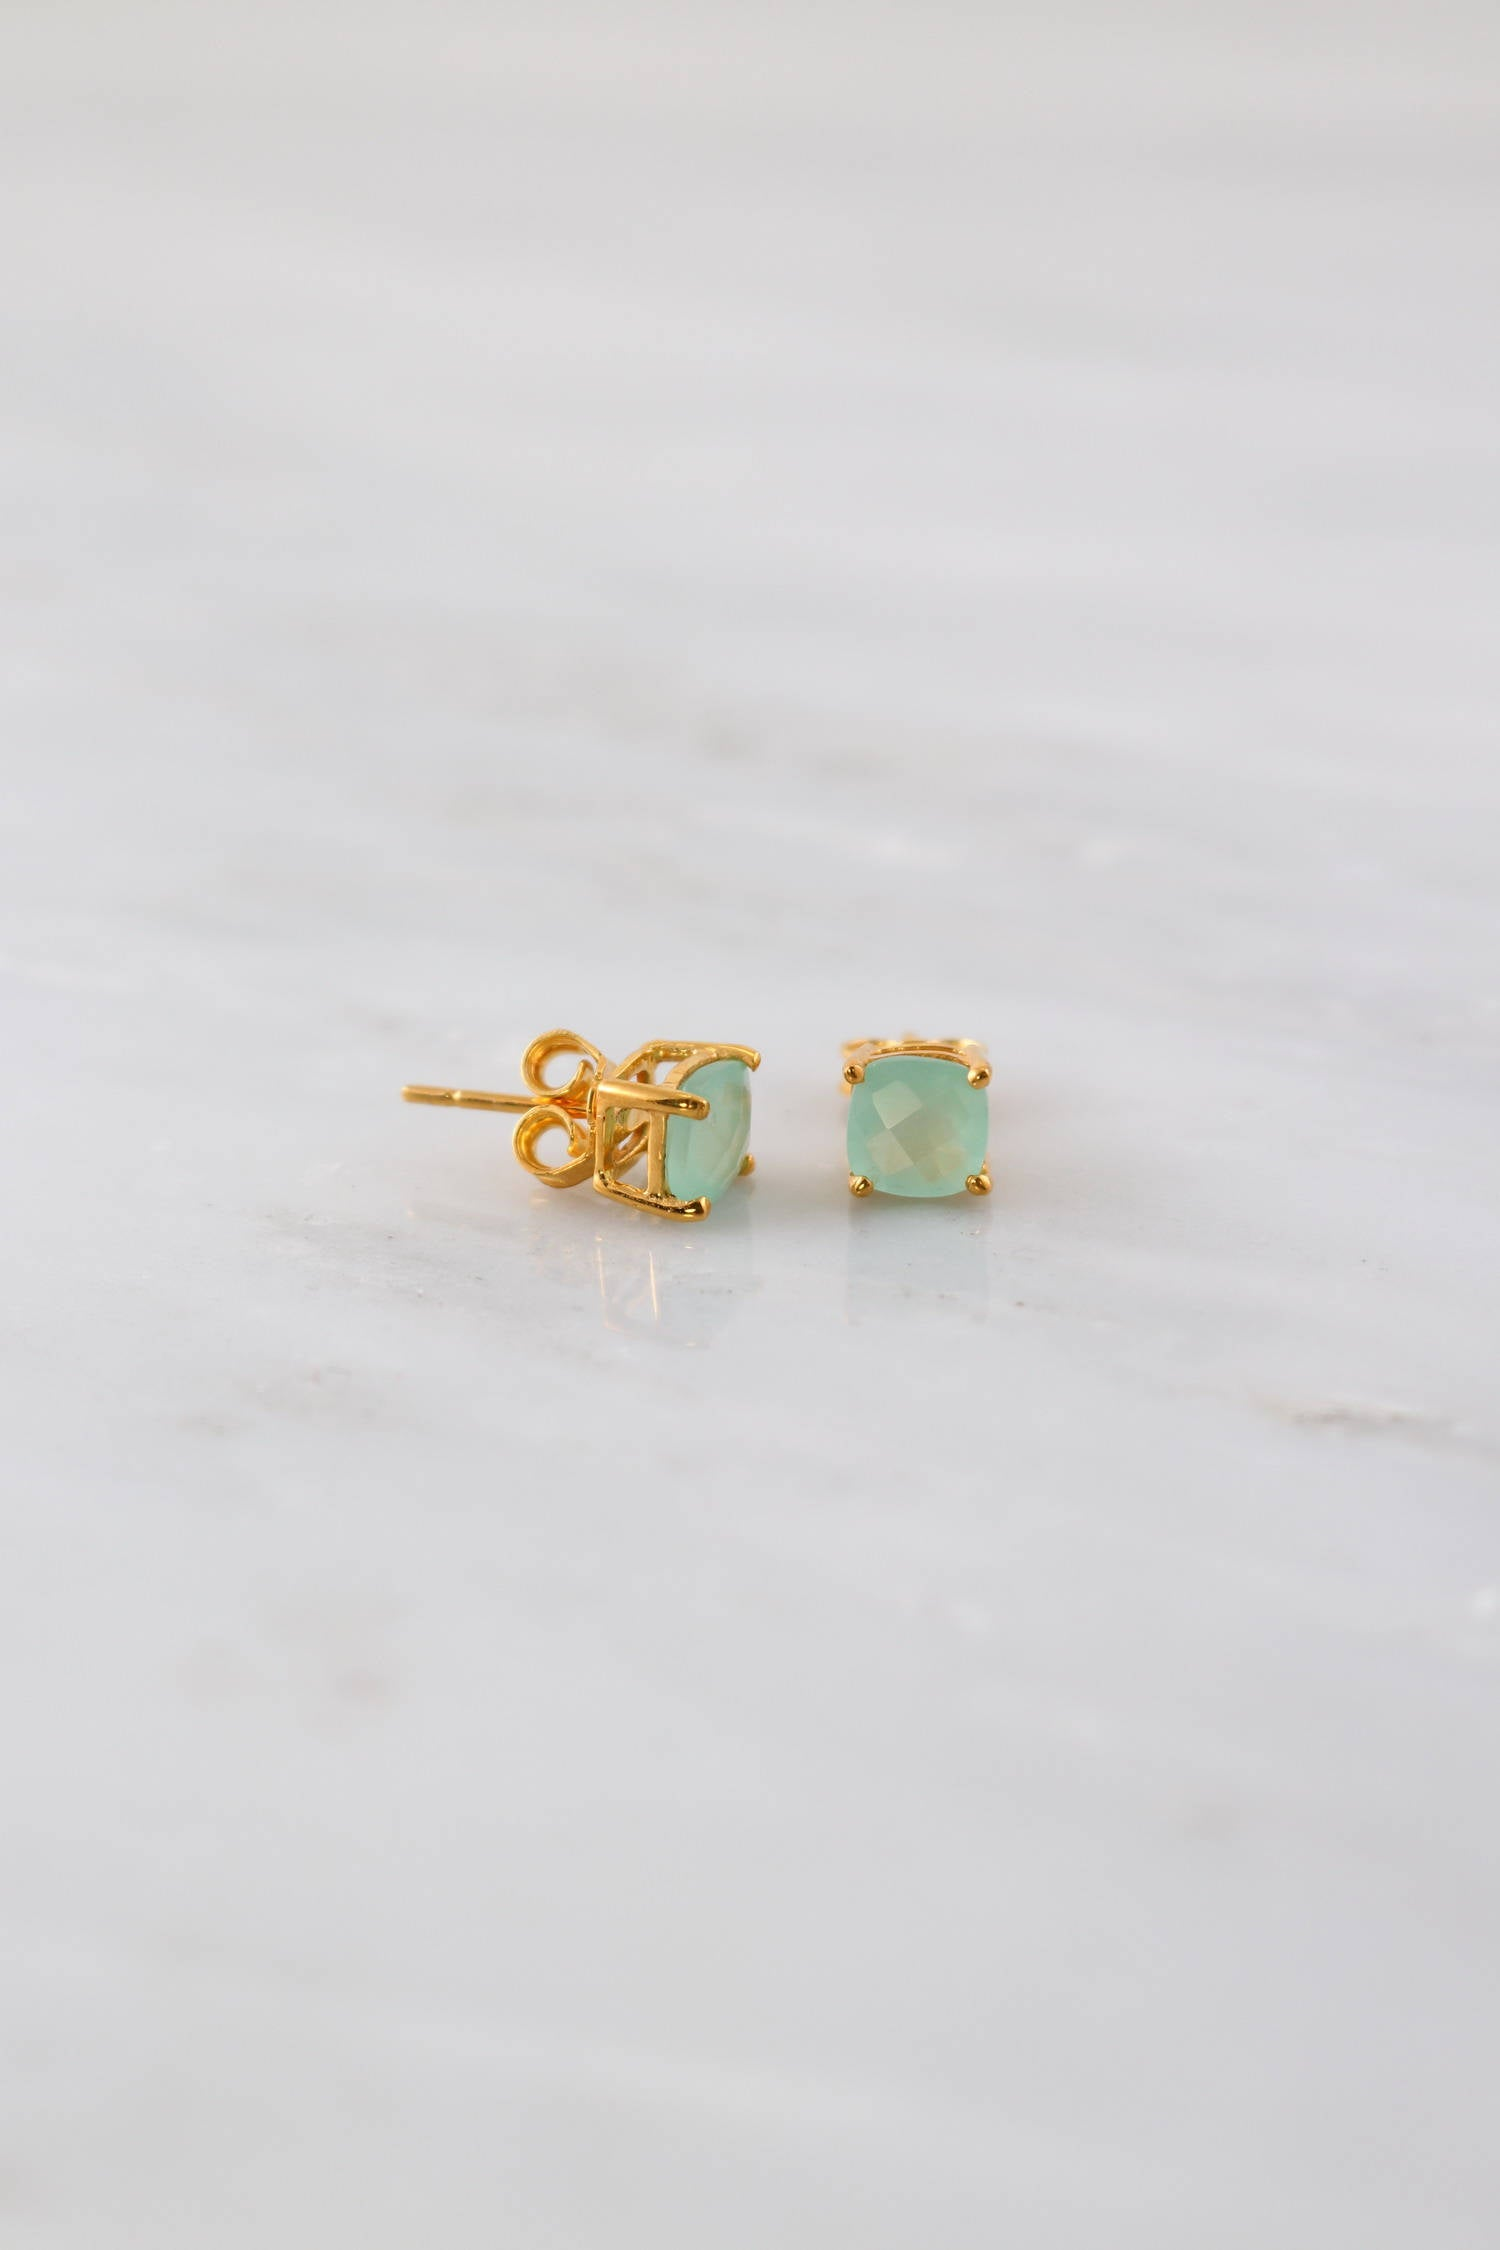 Aqua Chalcedony Stud Earring, Gold Post Earring, Gemstone Stud, Sea Green Gemstone Stud, Prongs Set stud, Cute Gift for her, Chalcedony Stud